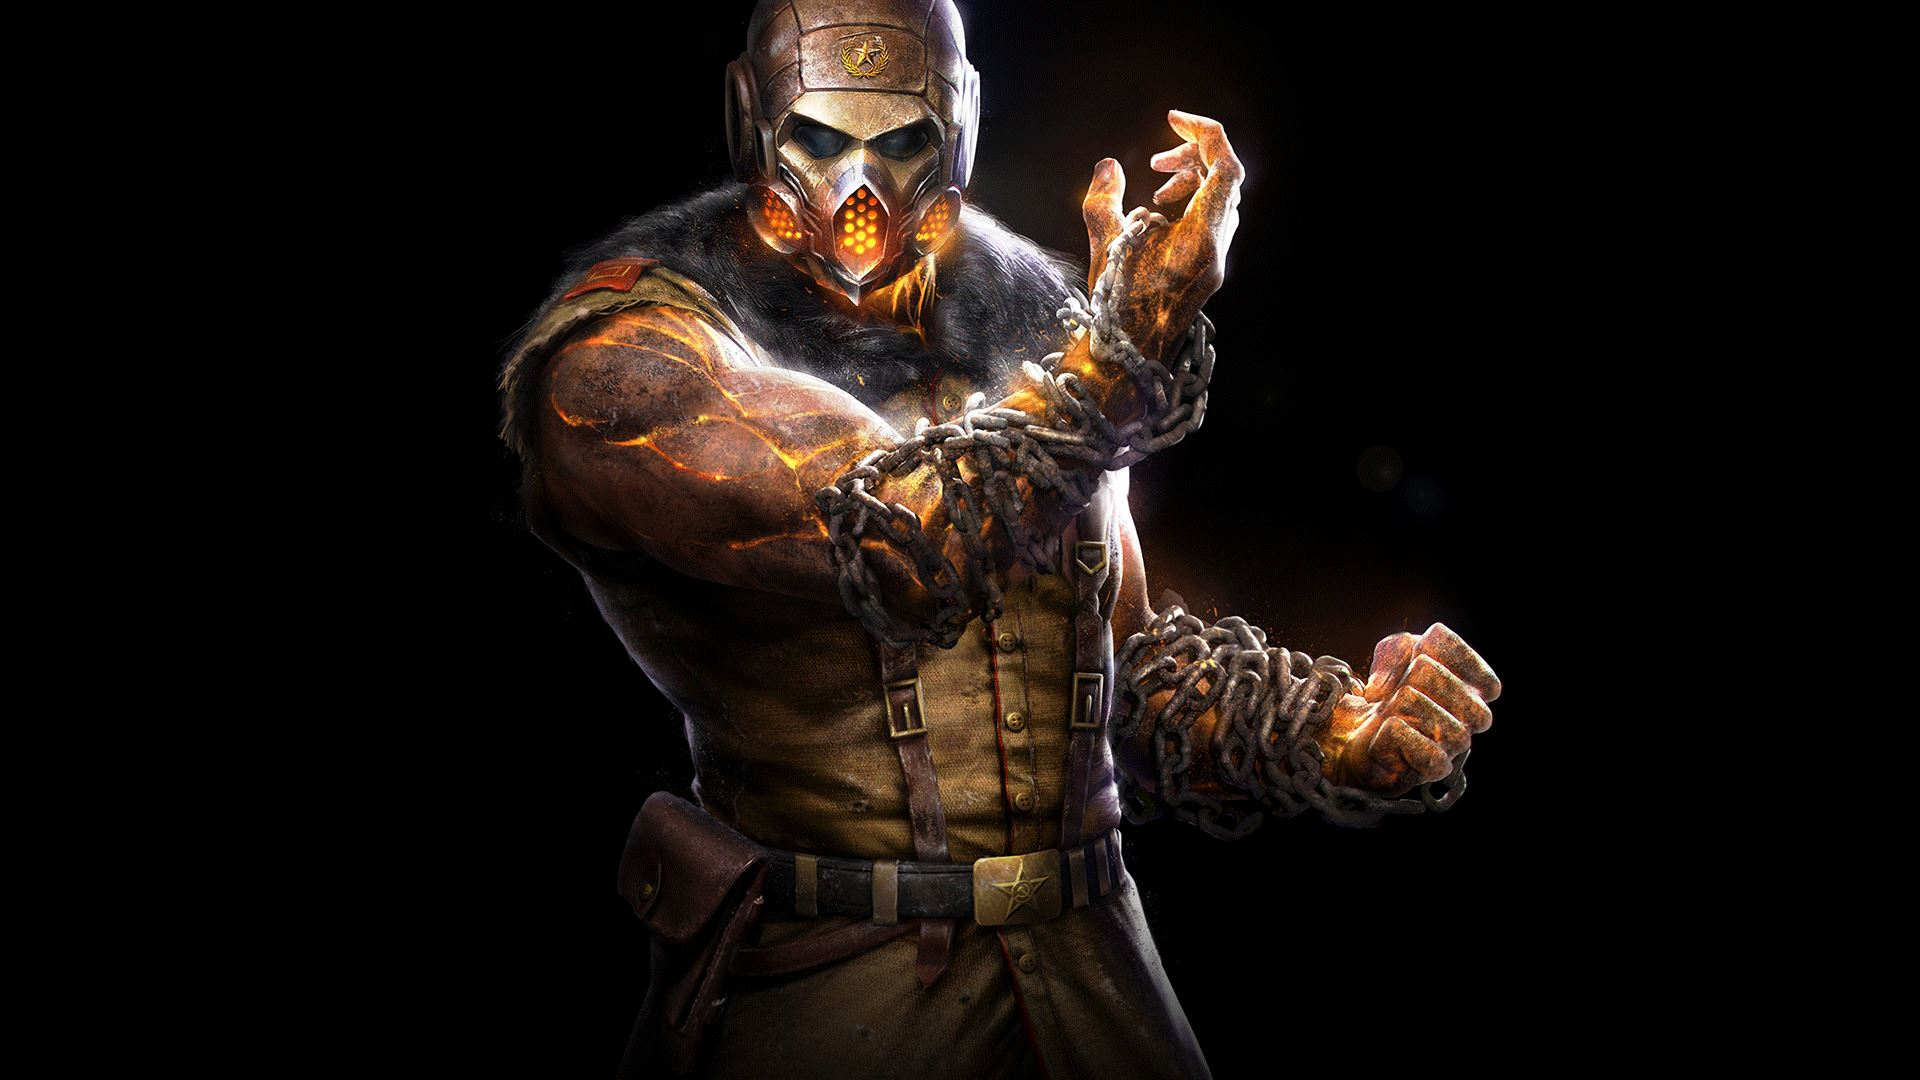 Mortal Kombat X Scorpio 3d Cool Video Games Wallpapers: Mortal Wallpapers, Photos And Desktop Backgrounds Up To 8K